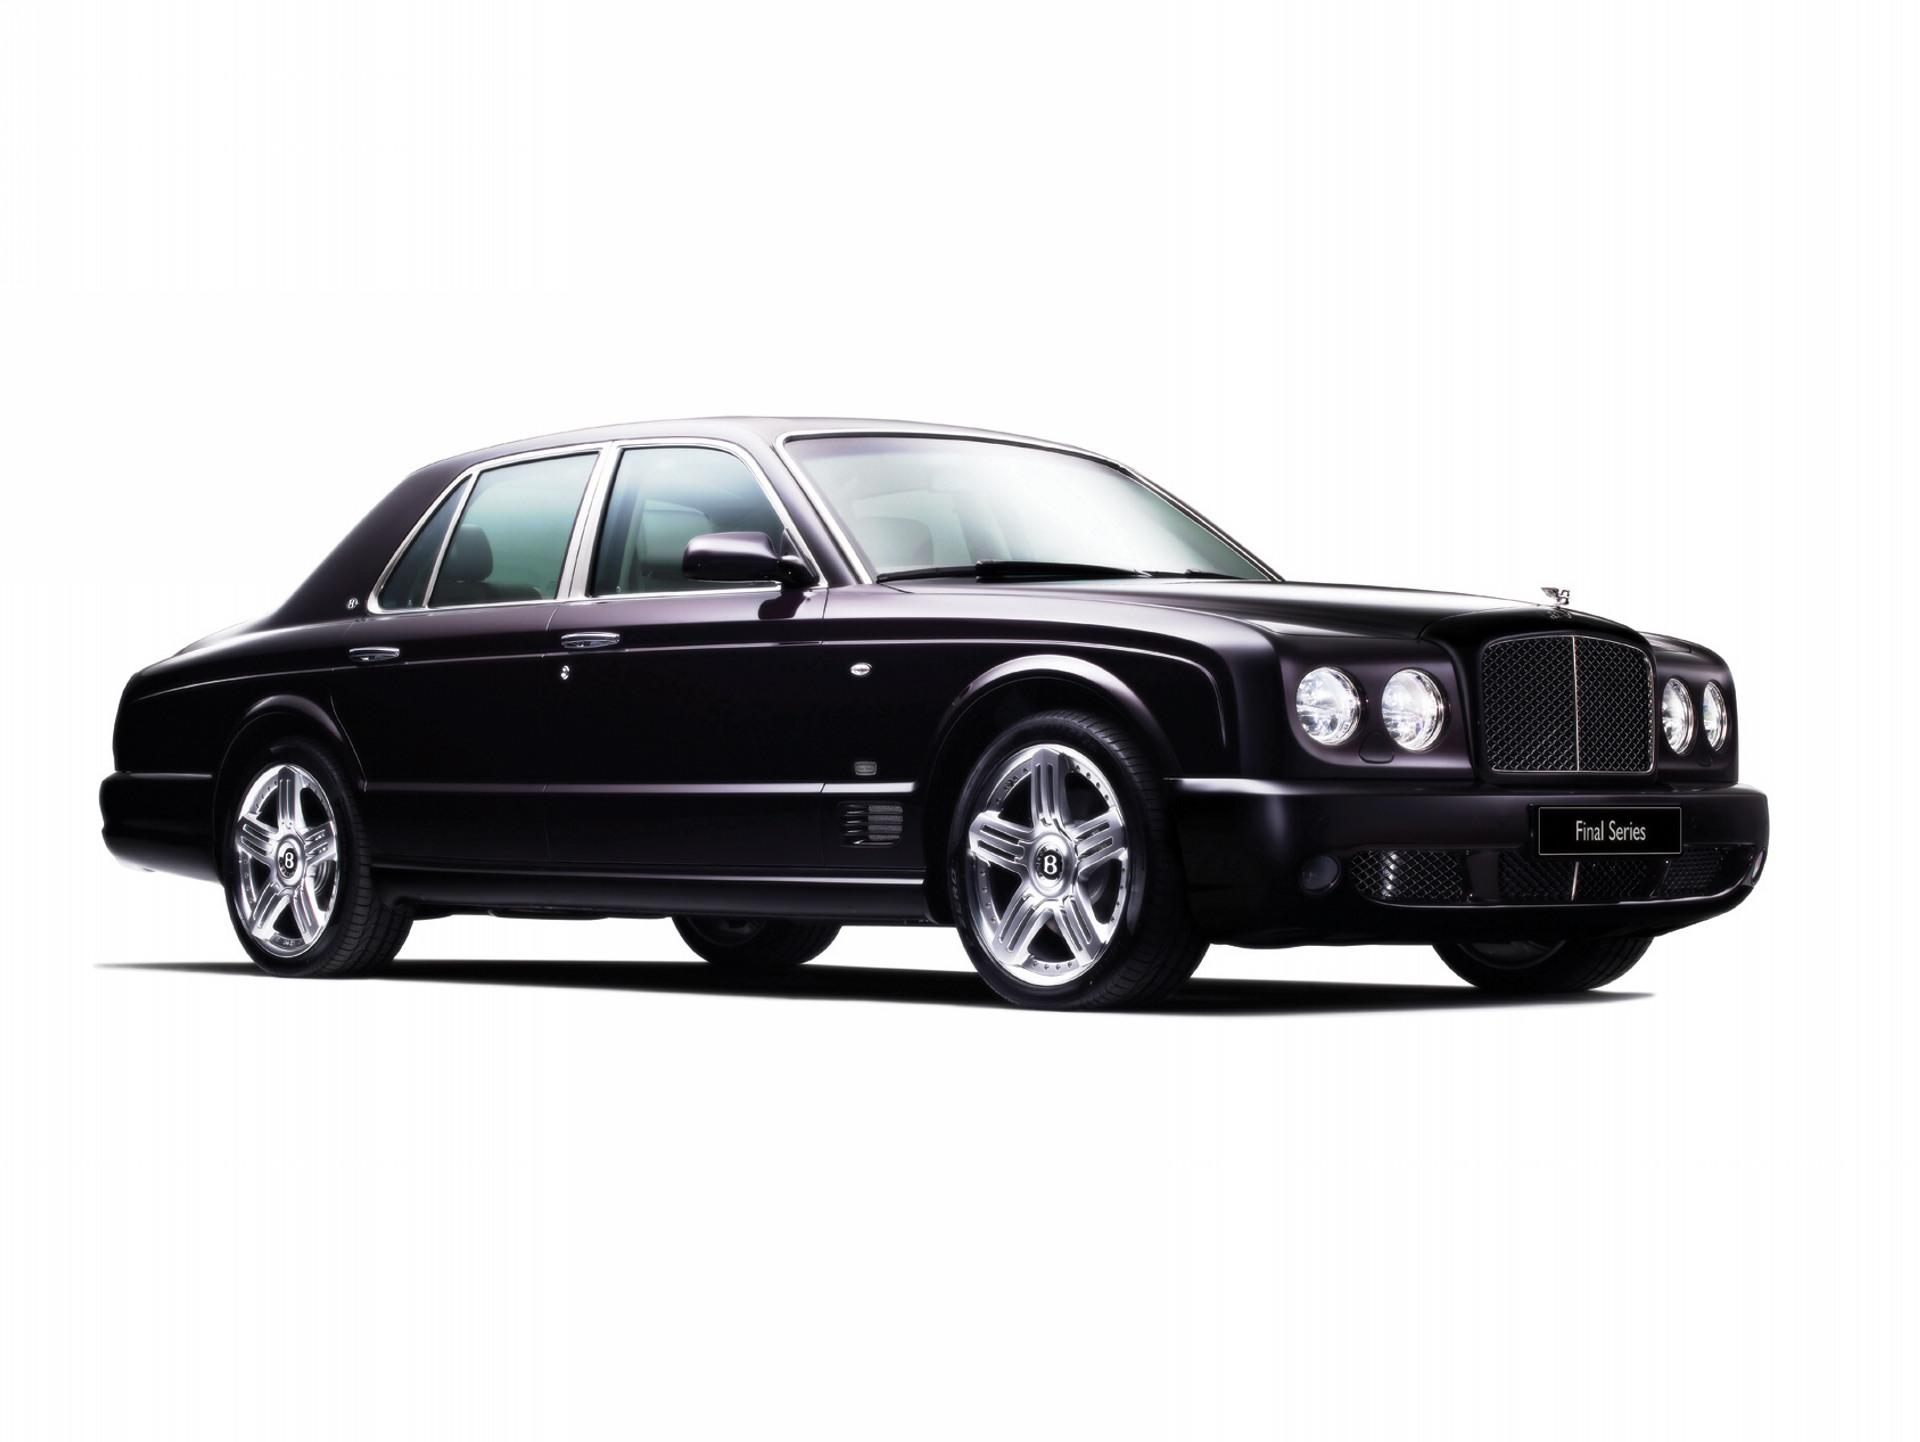 used cars classifieds sale bentley for t derbyshire pistonheads in arnage